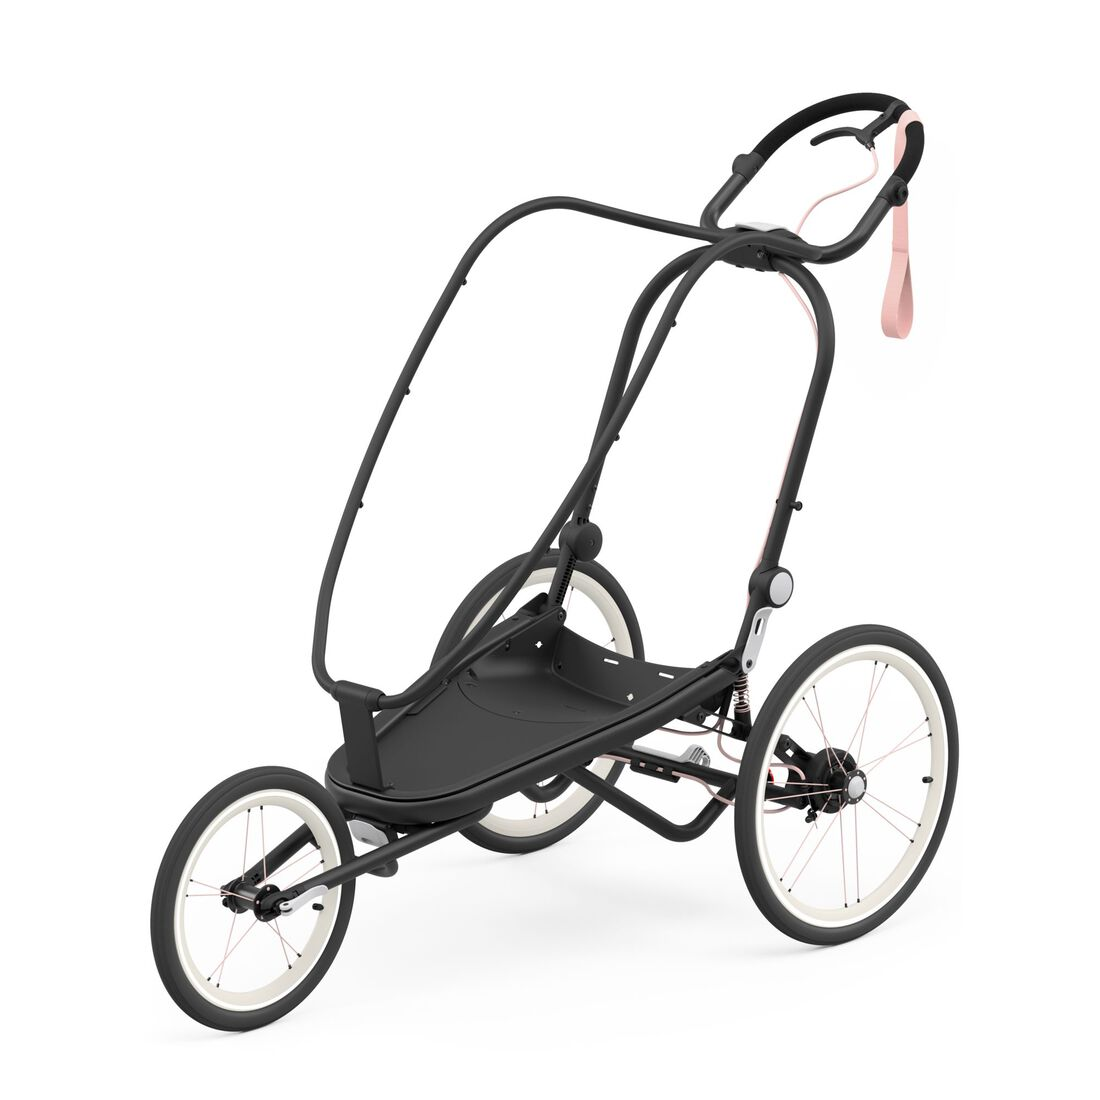 CYBEX Zeno One Box - All Black in All Black large image number 4